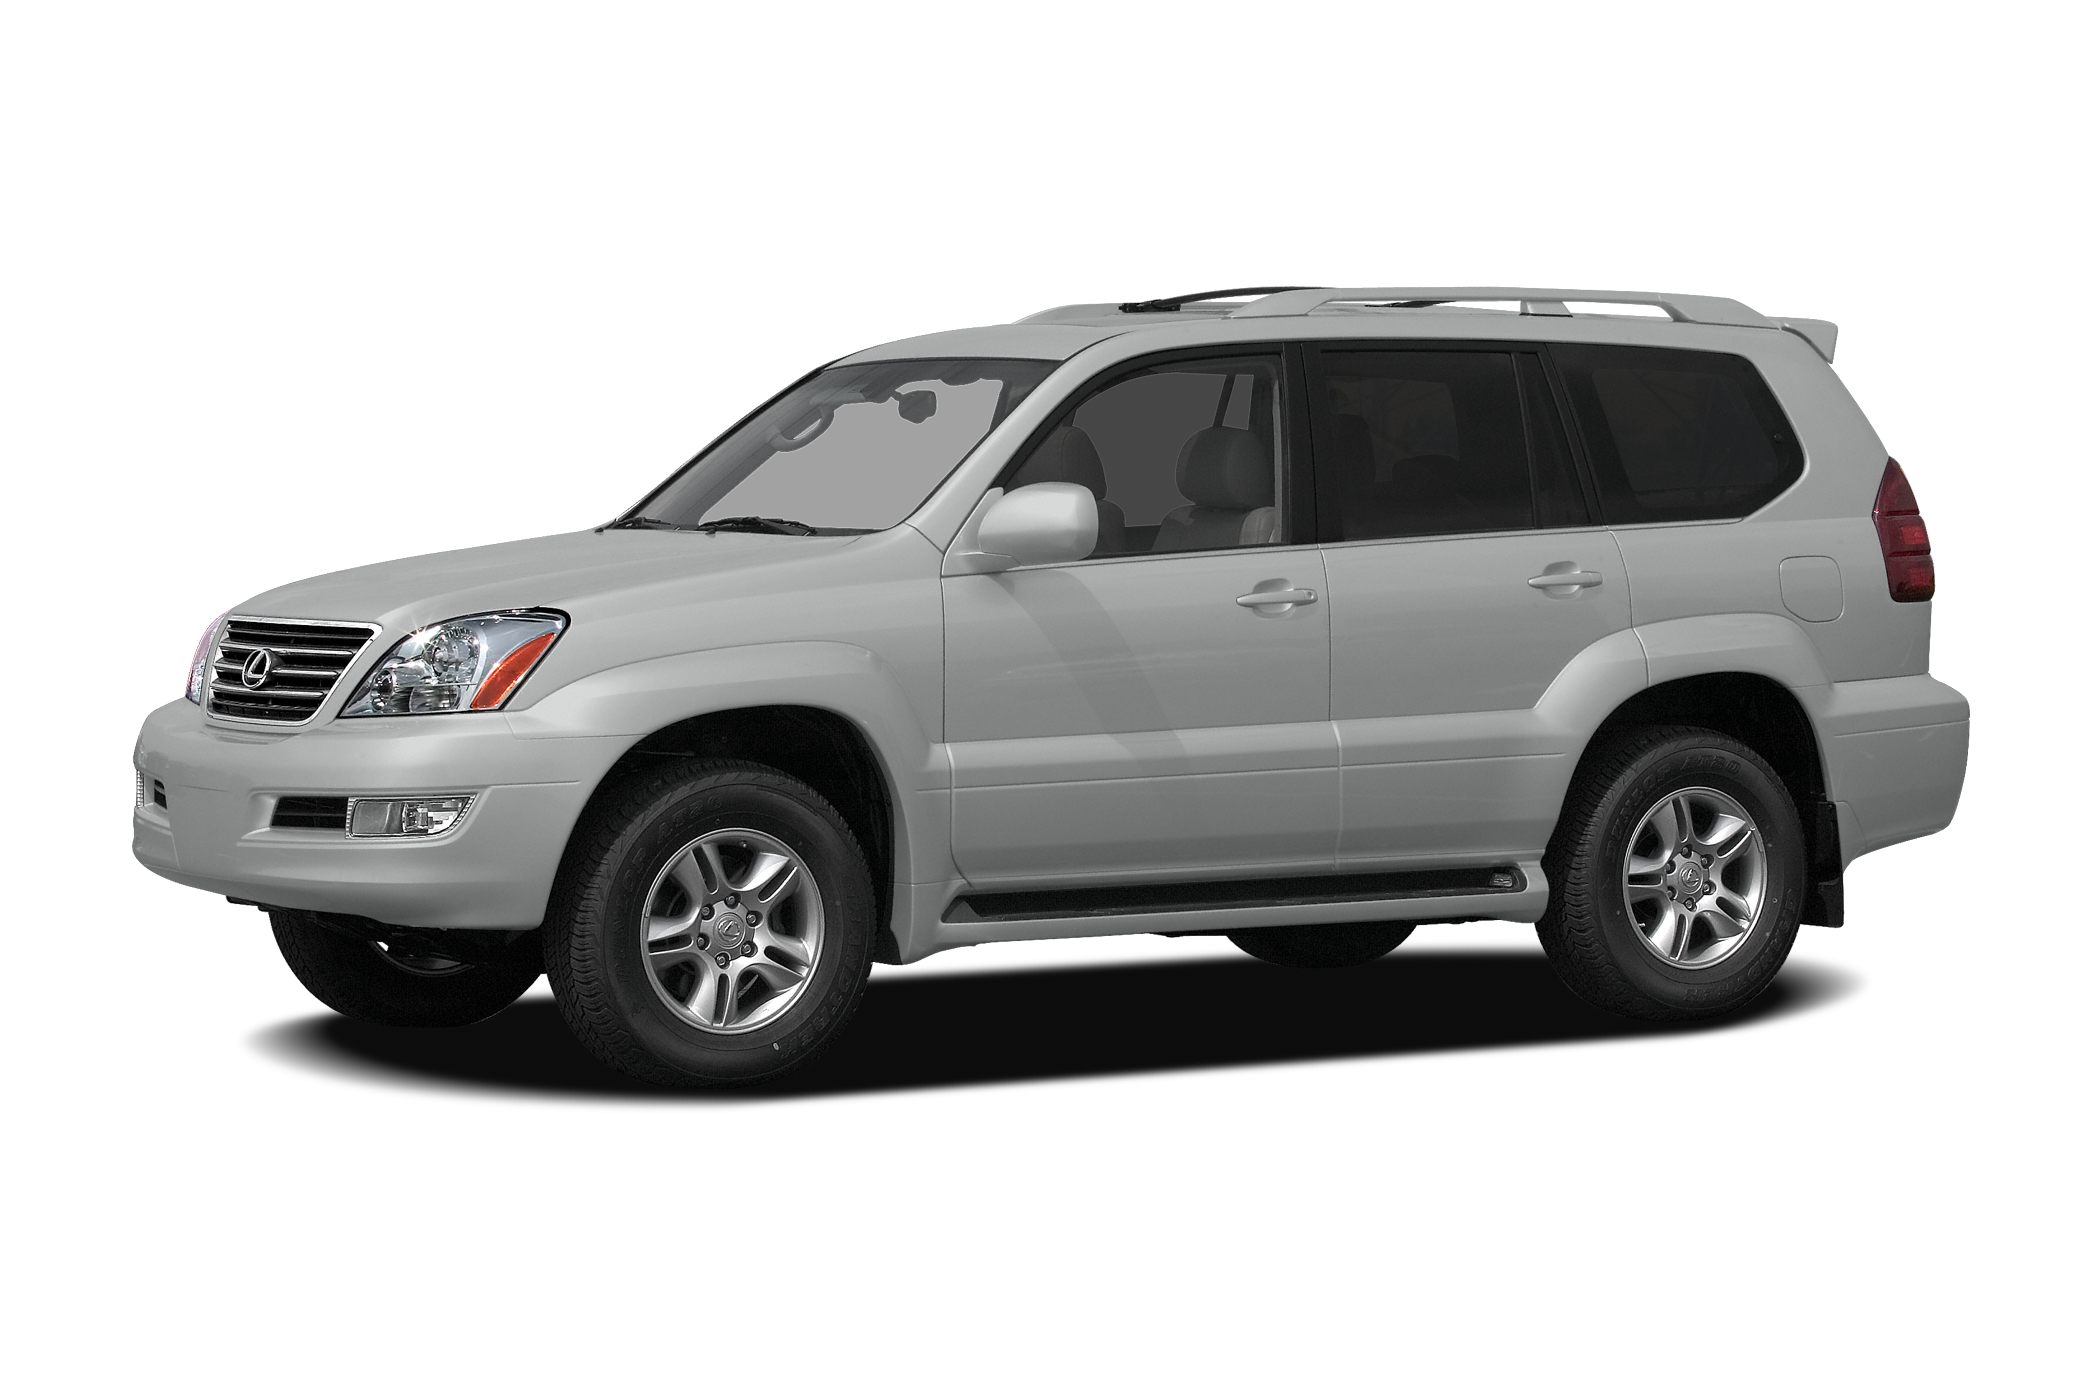 2009 Lexus GX 470 SUV for sale in Santa Rosa for $39,875 with 20,120 miles.